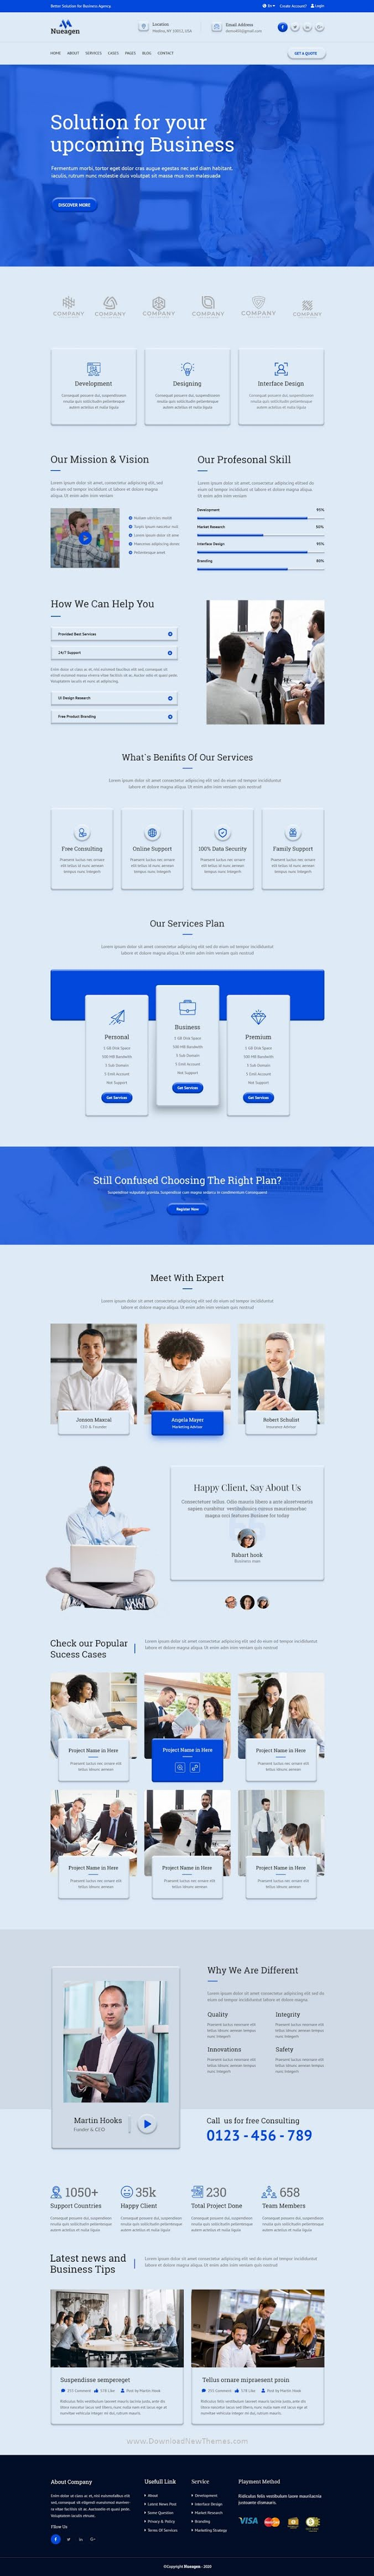 Business Agency UI Template